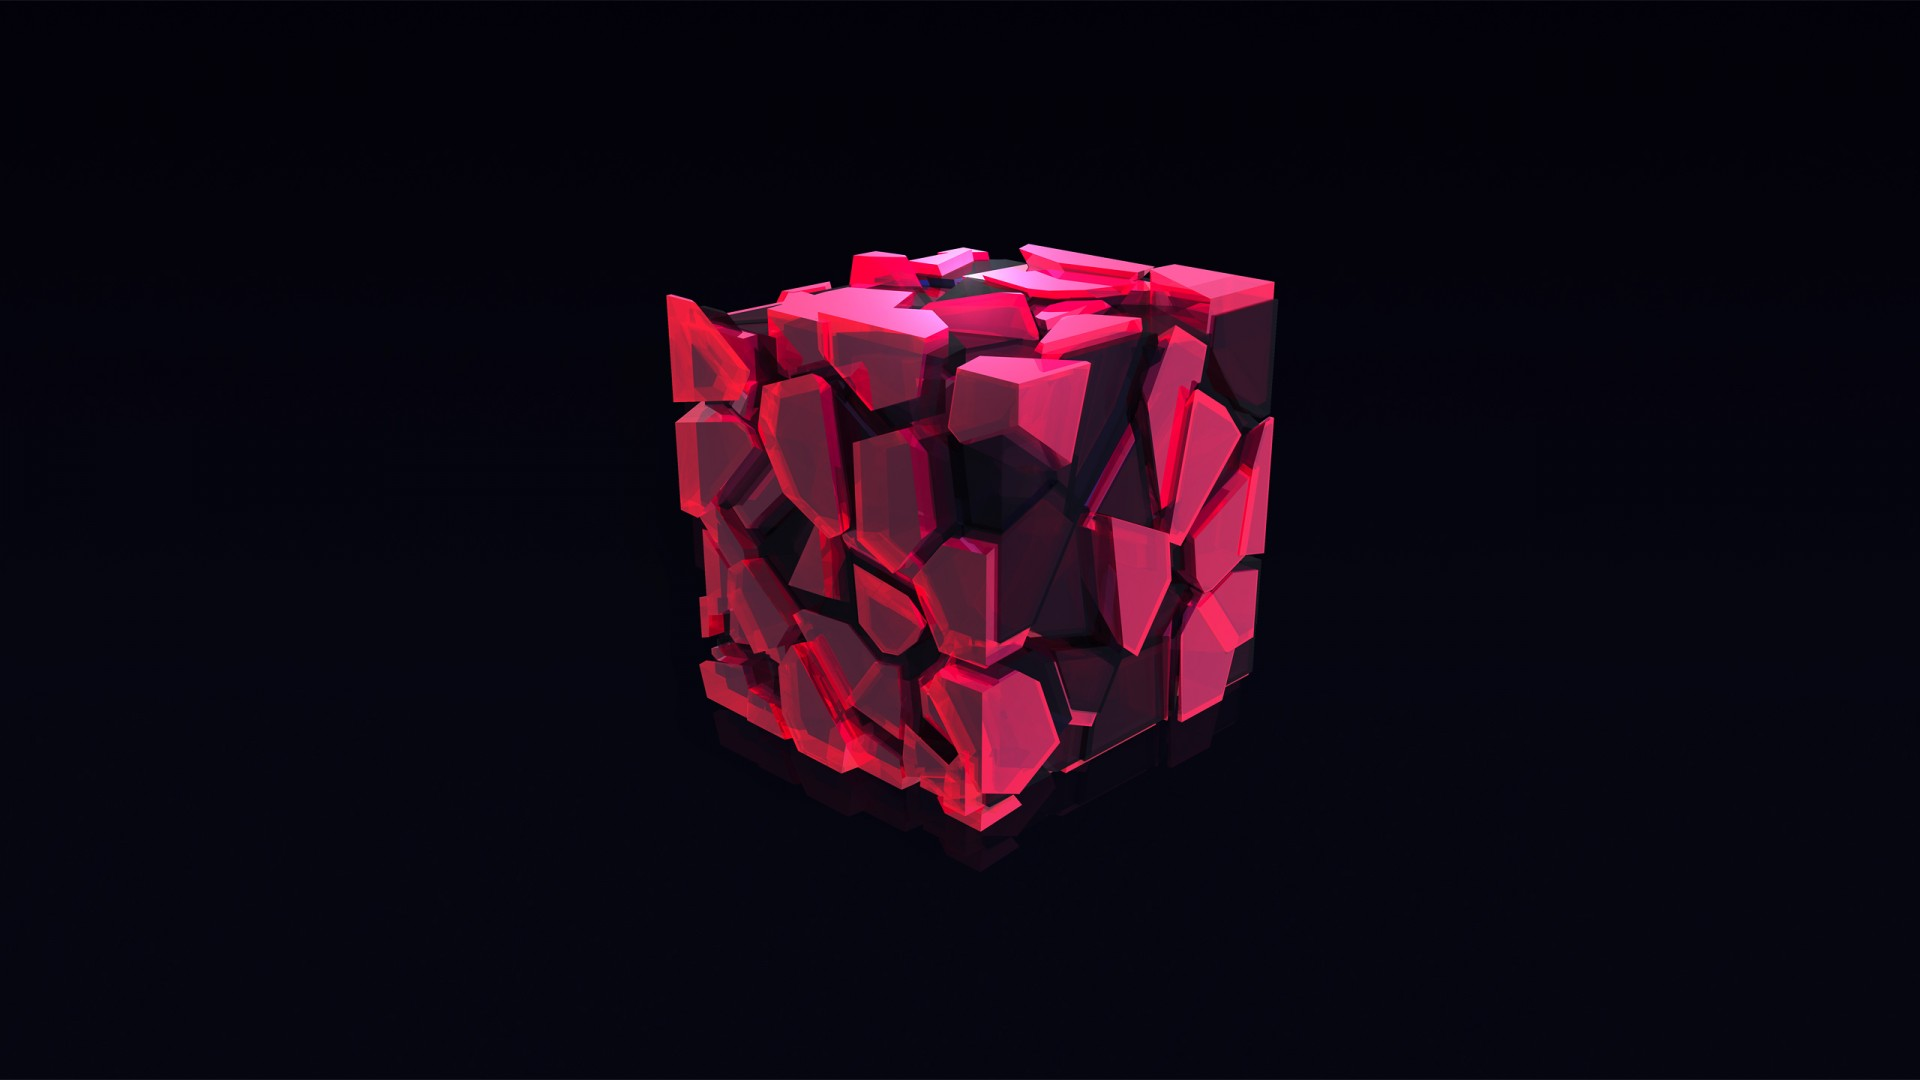 wallpaper cube  3d  pink  hd  abstract  16361